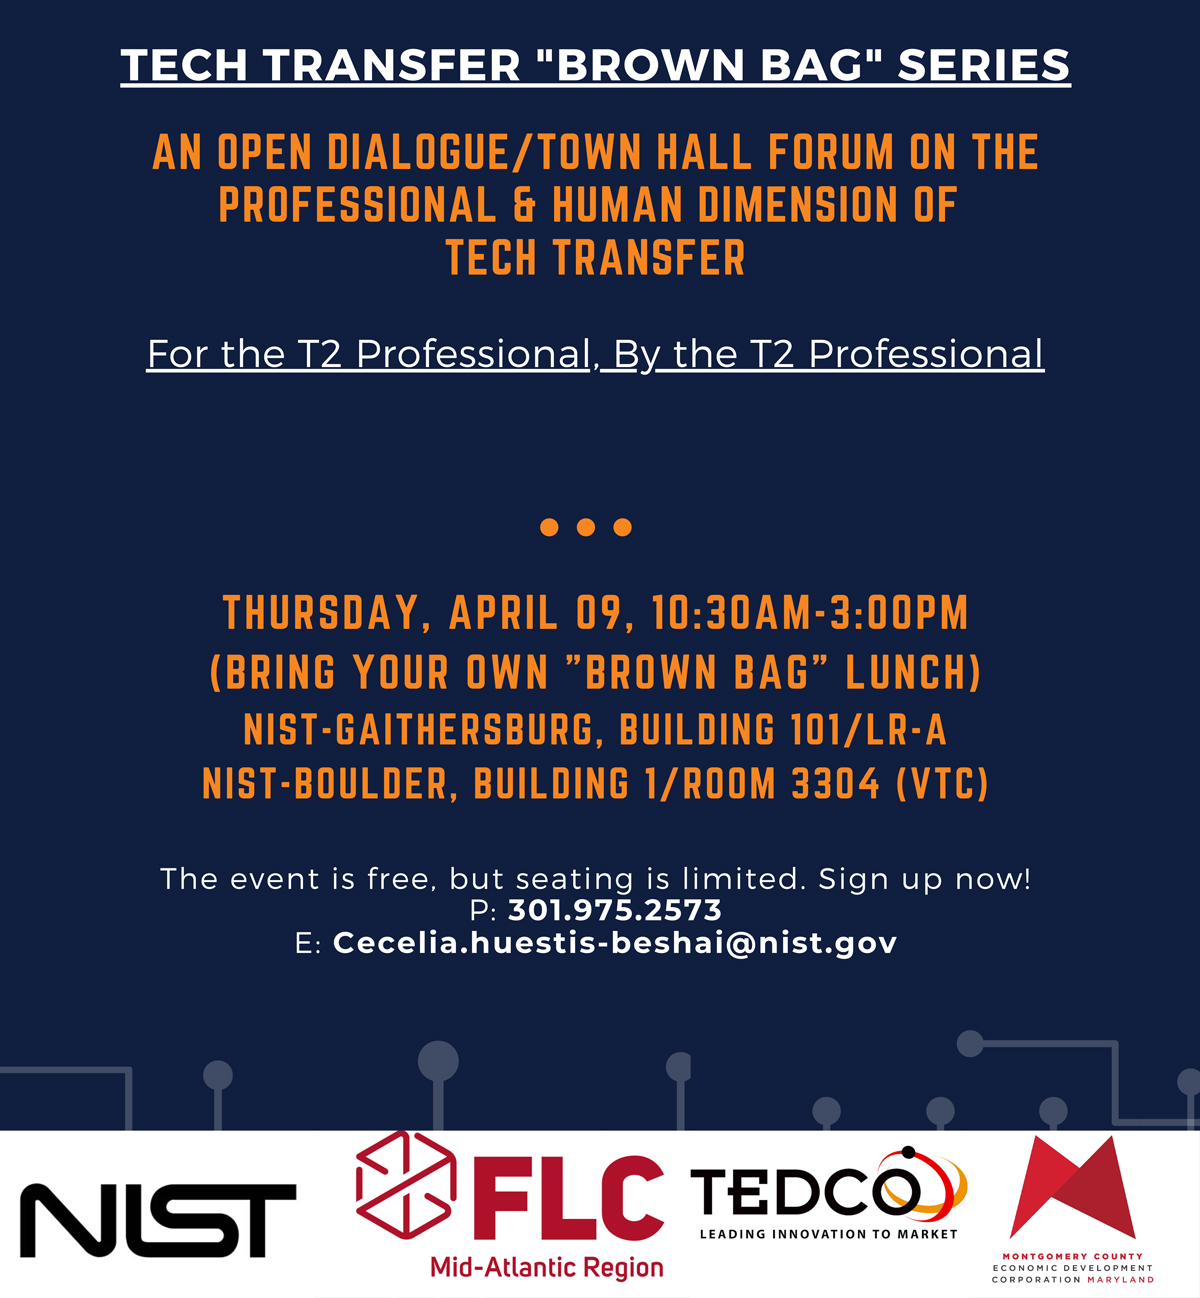 Tech Transfer Brown Bag Series announcement Poster